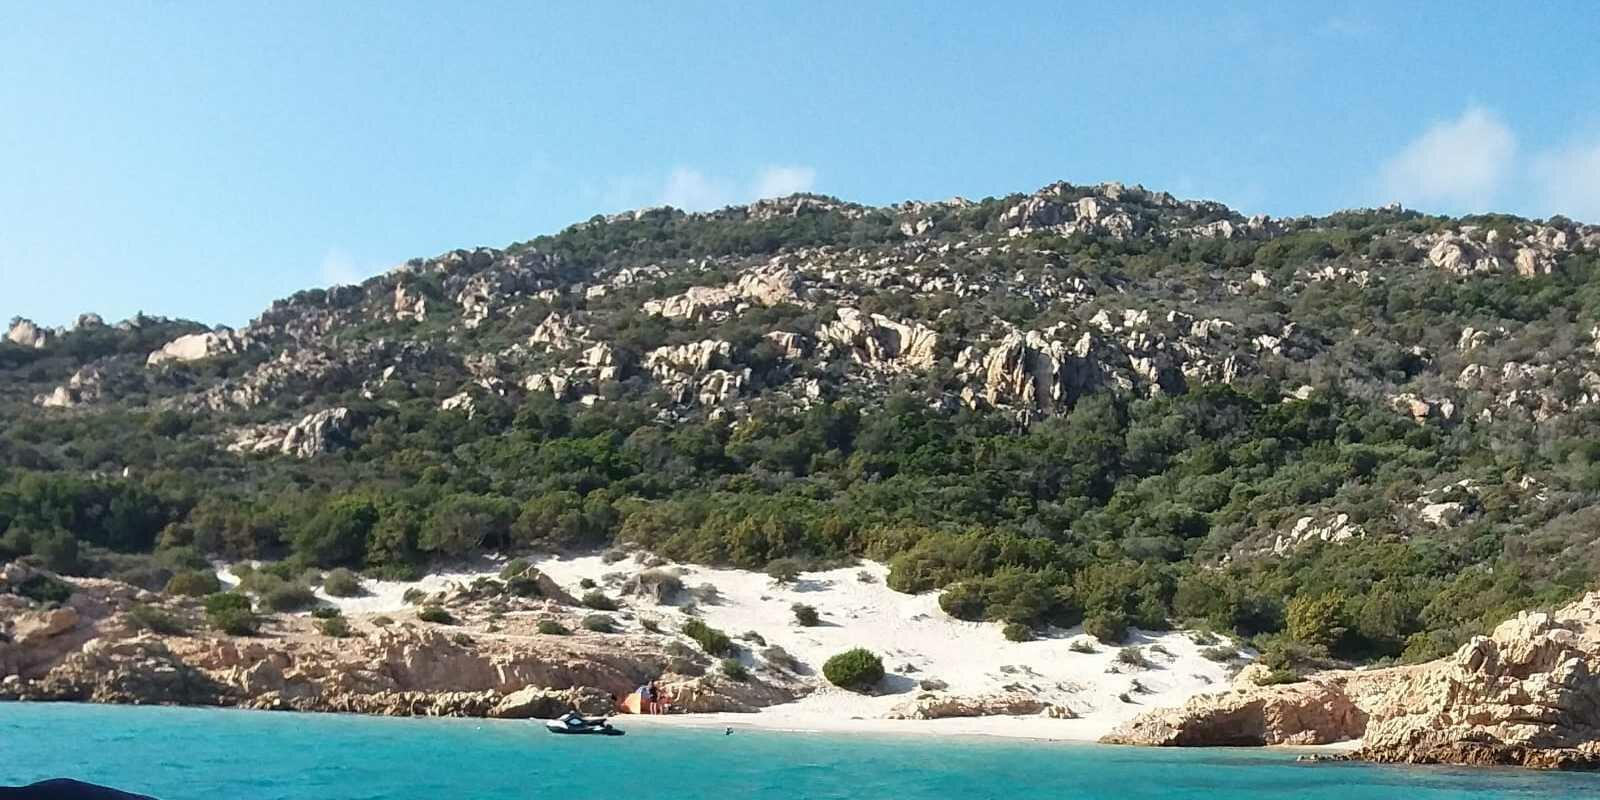 An unforgettable day to discover the archipelago of La Maddalena.